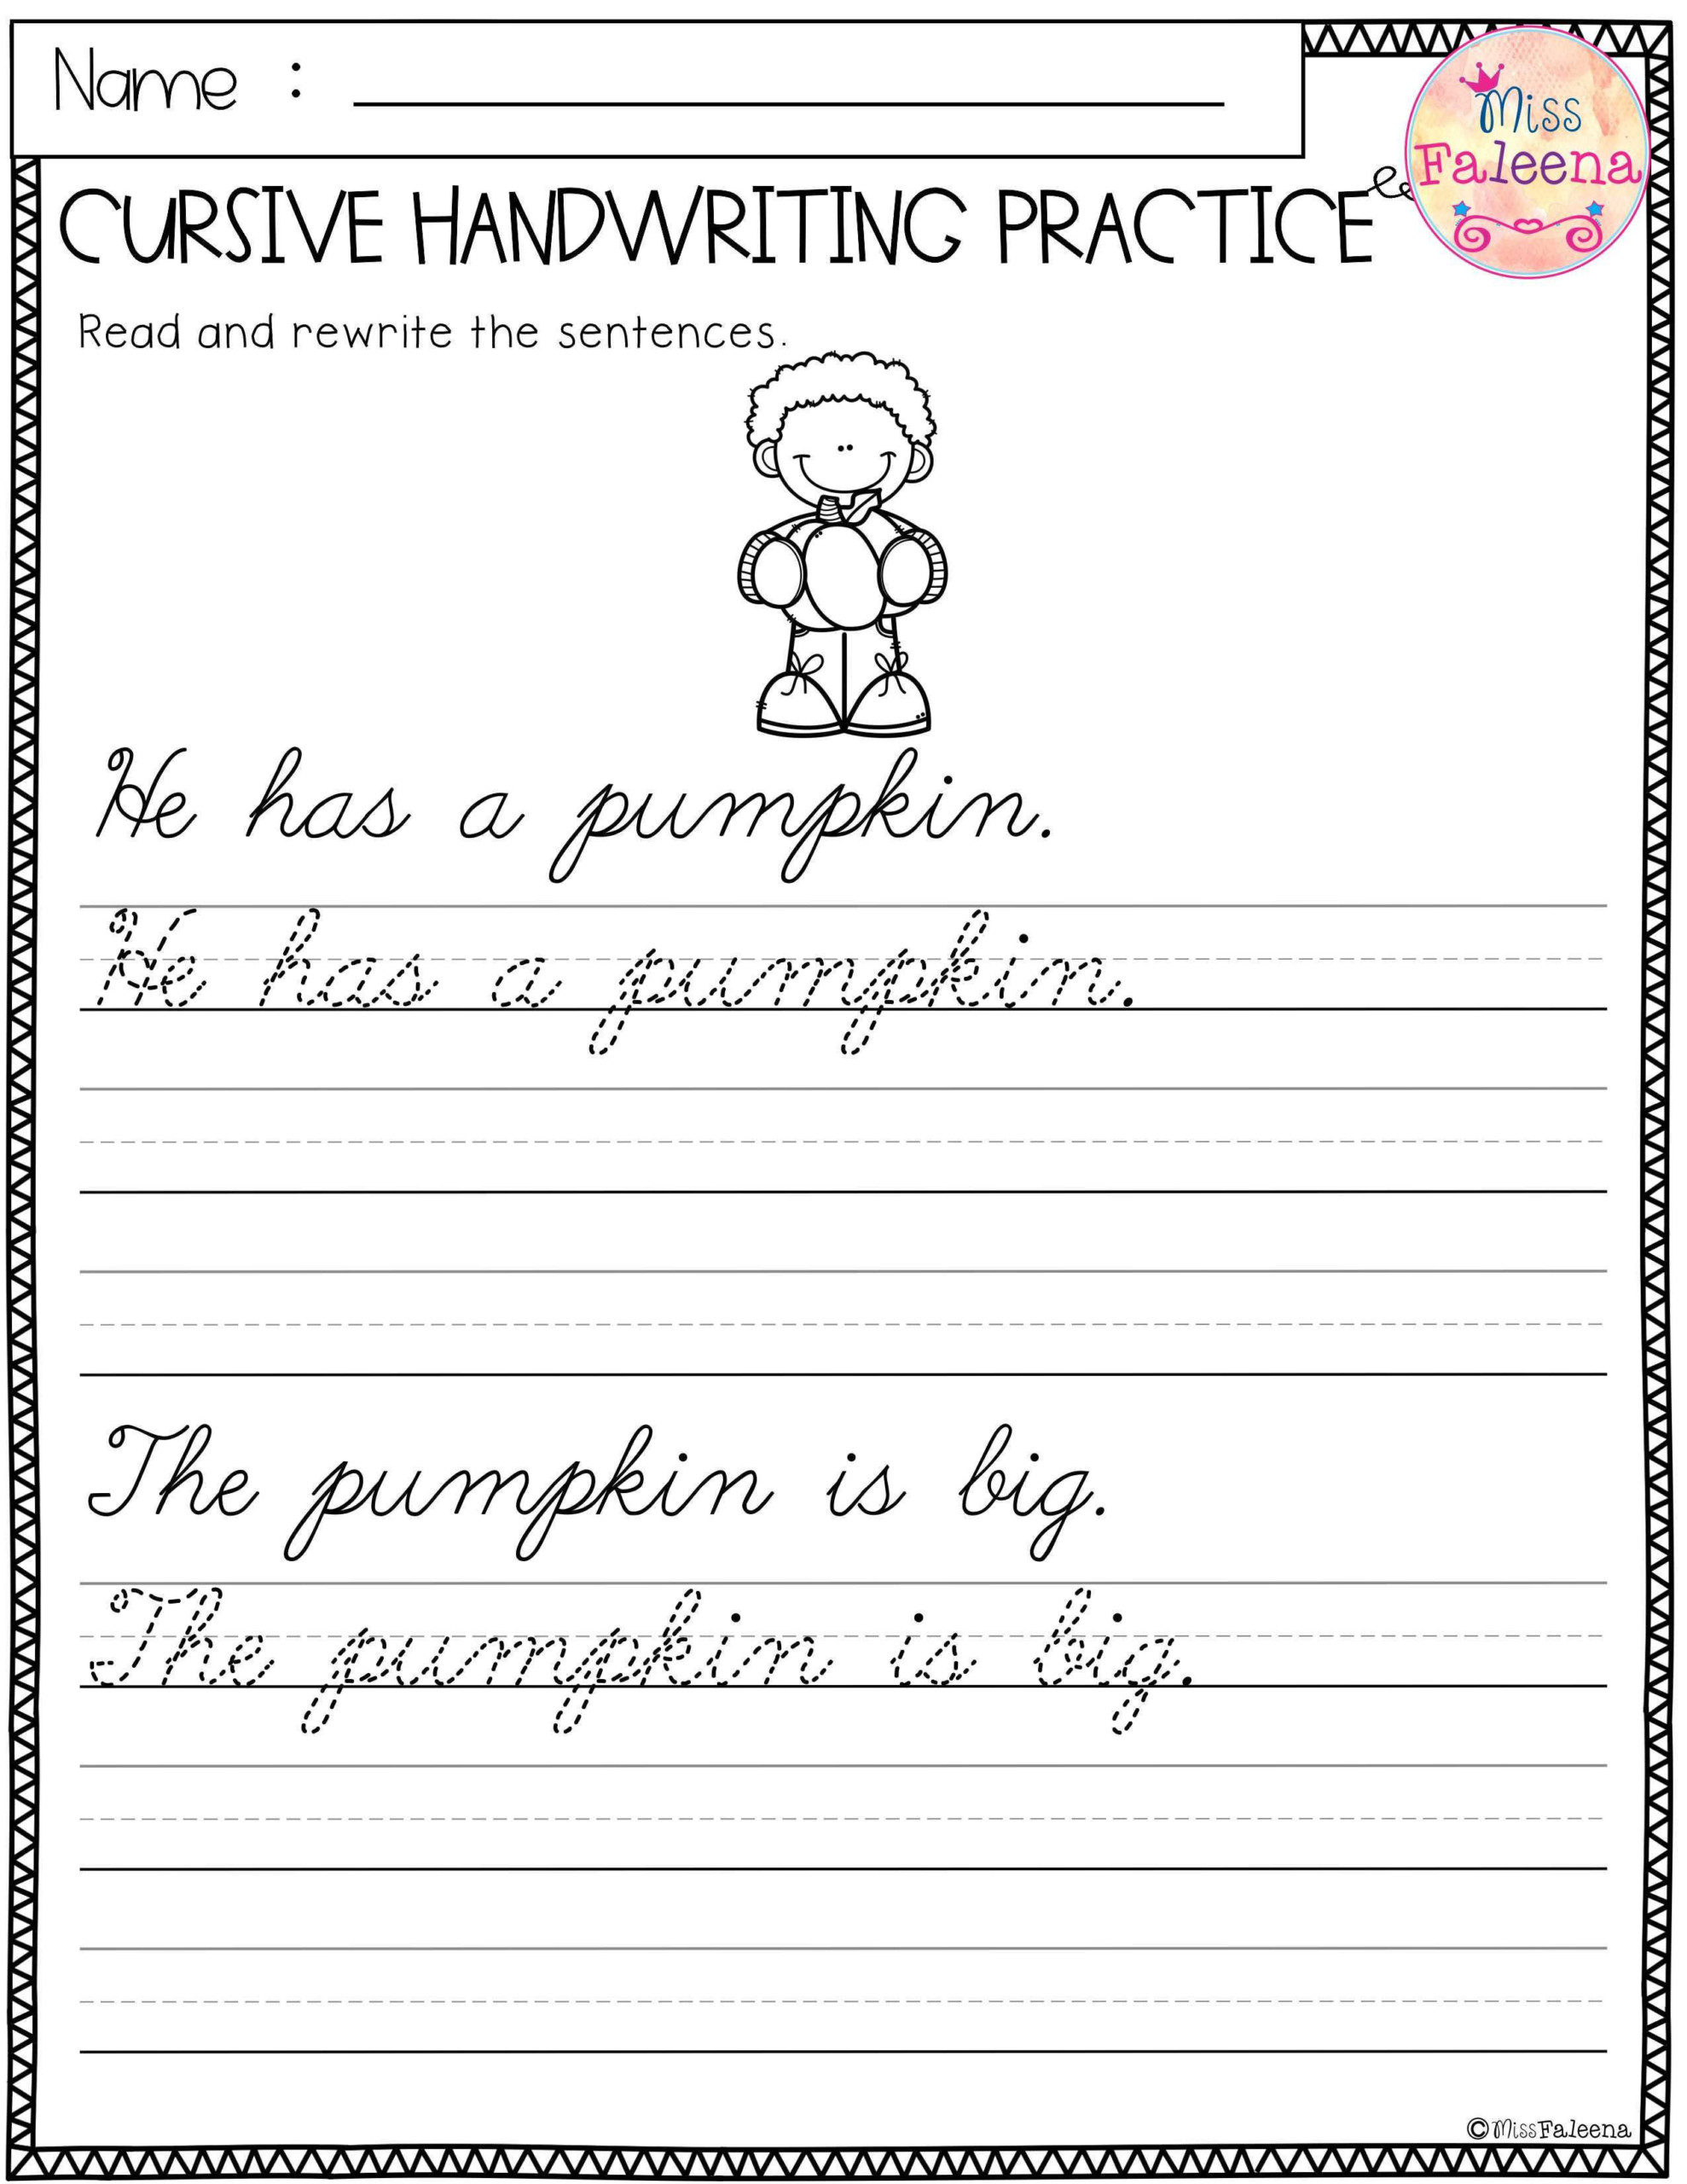 Free Cursive Handwriting. This Product Has 5 Pages Of